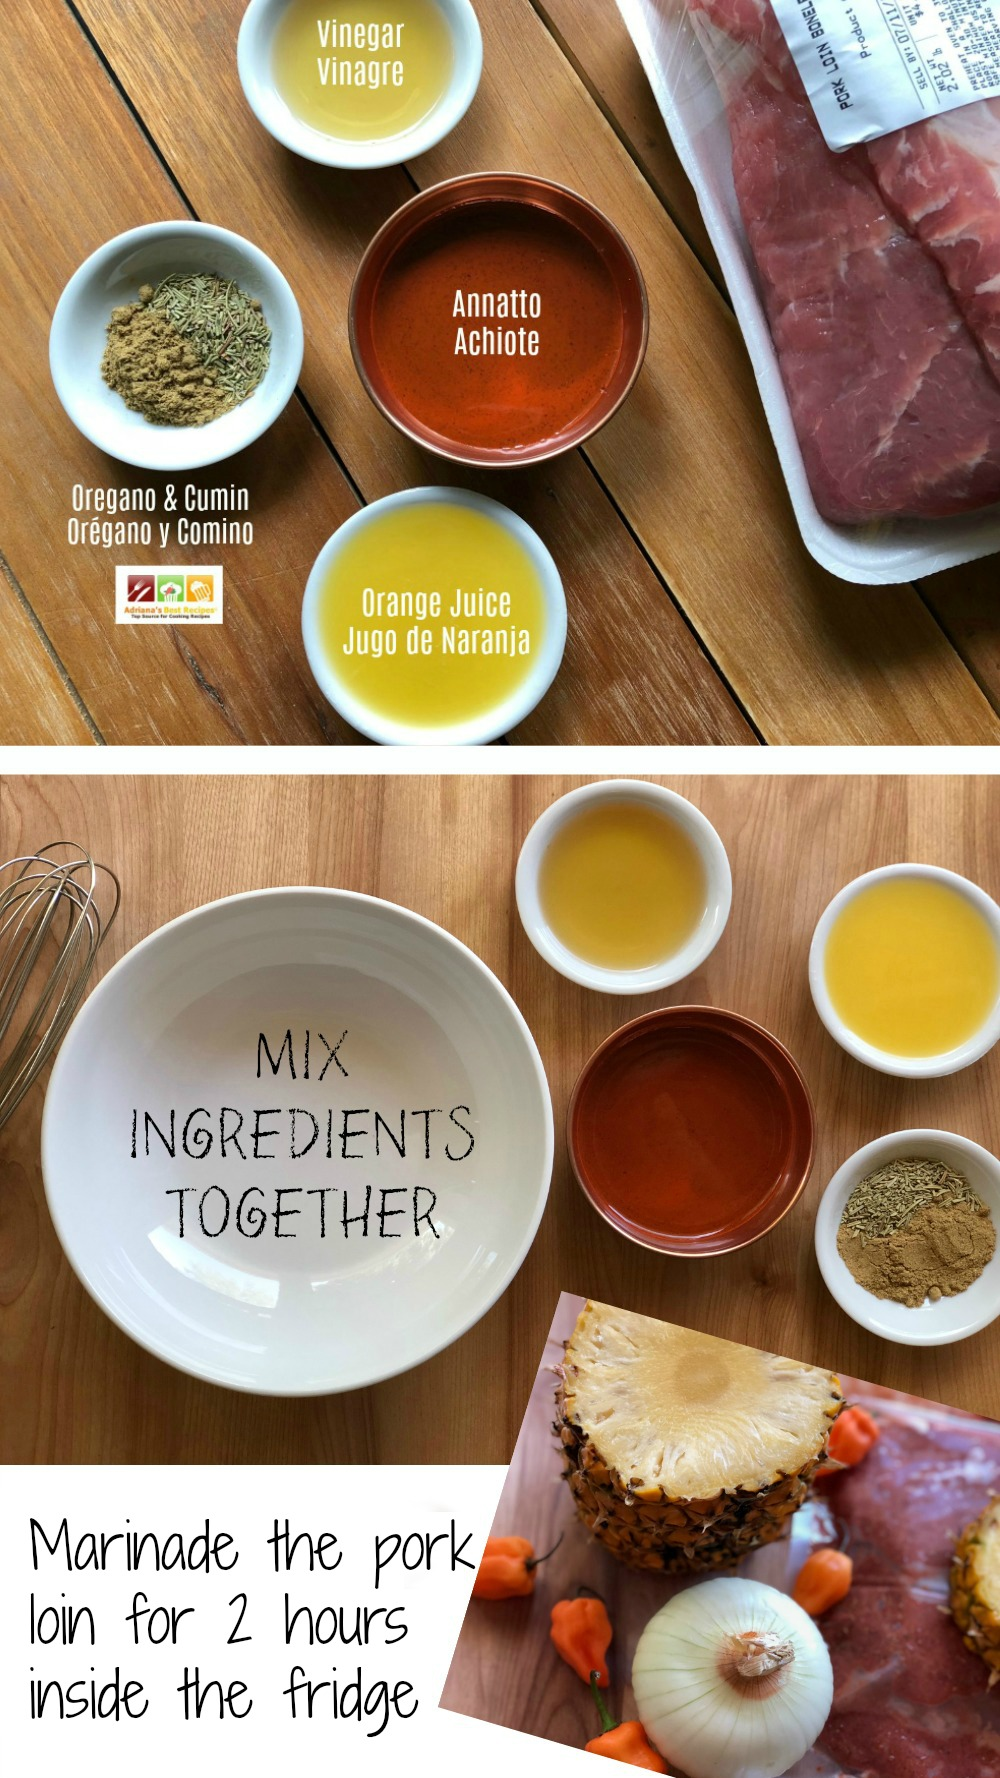 Steps for making the marinade for the pork tacos al pastor